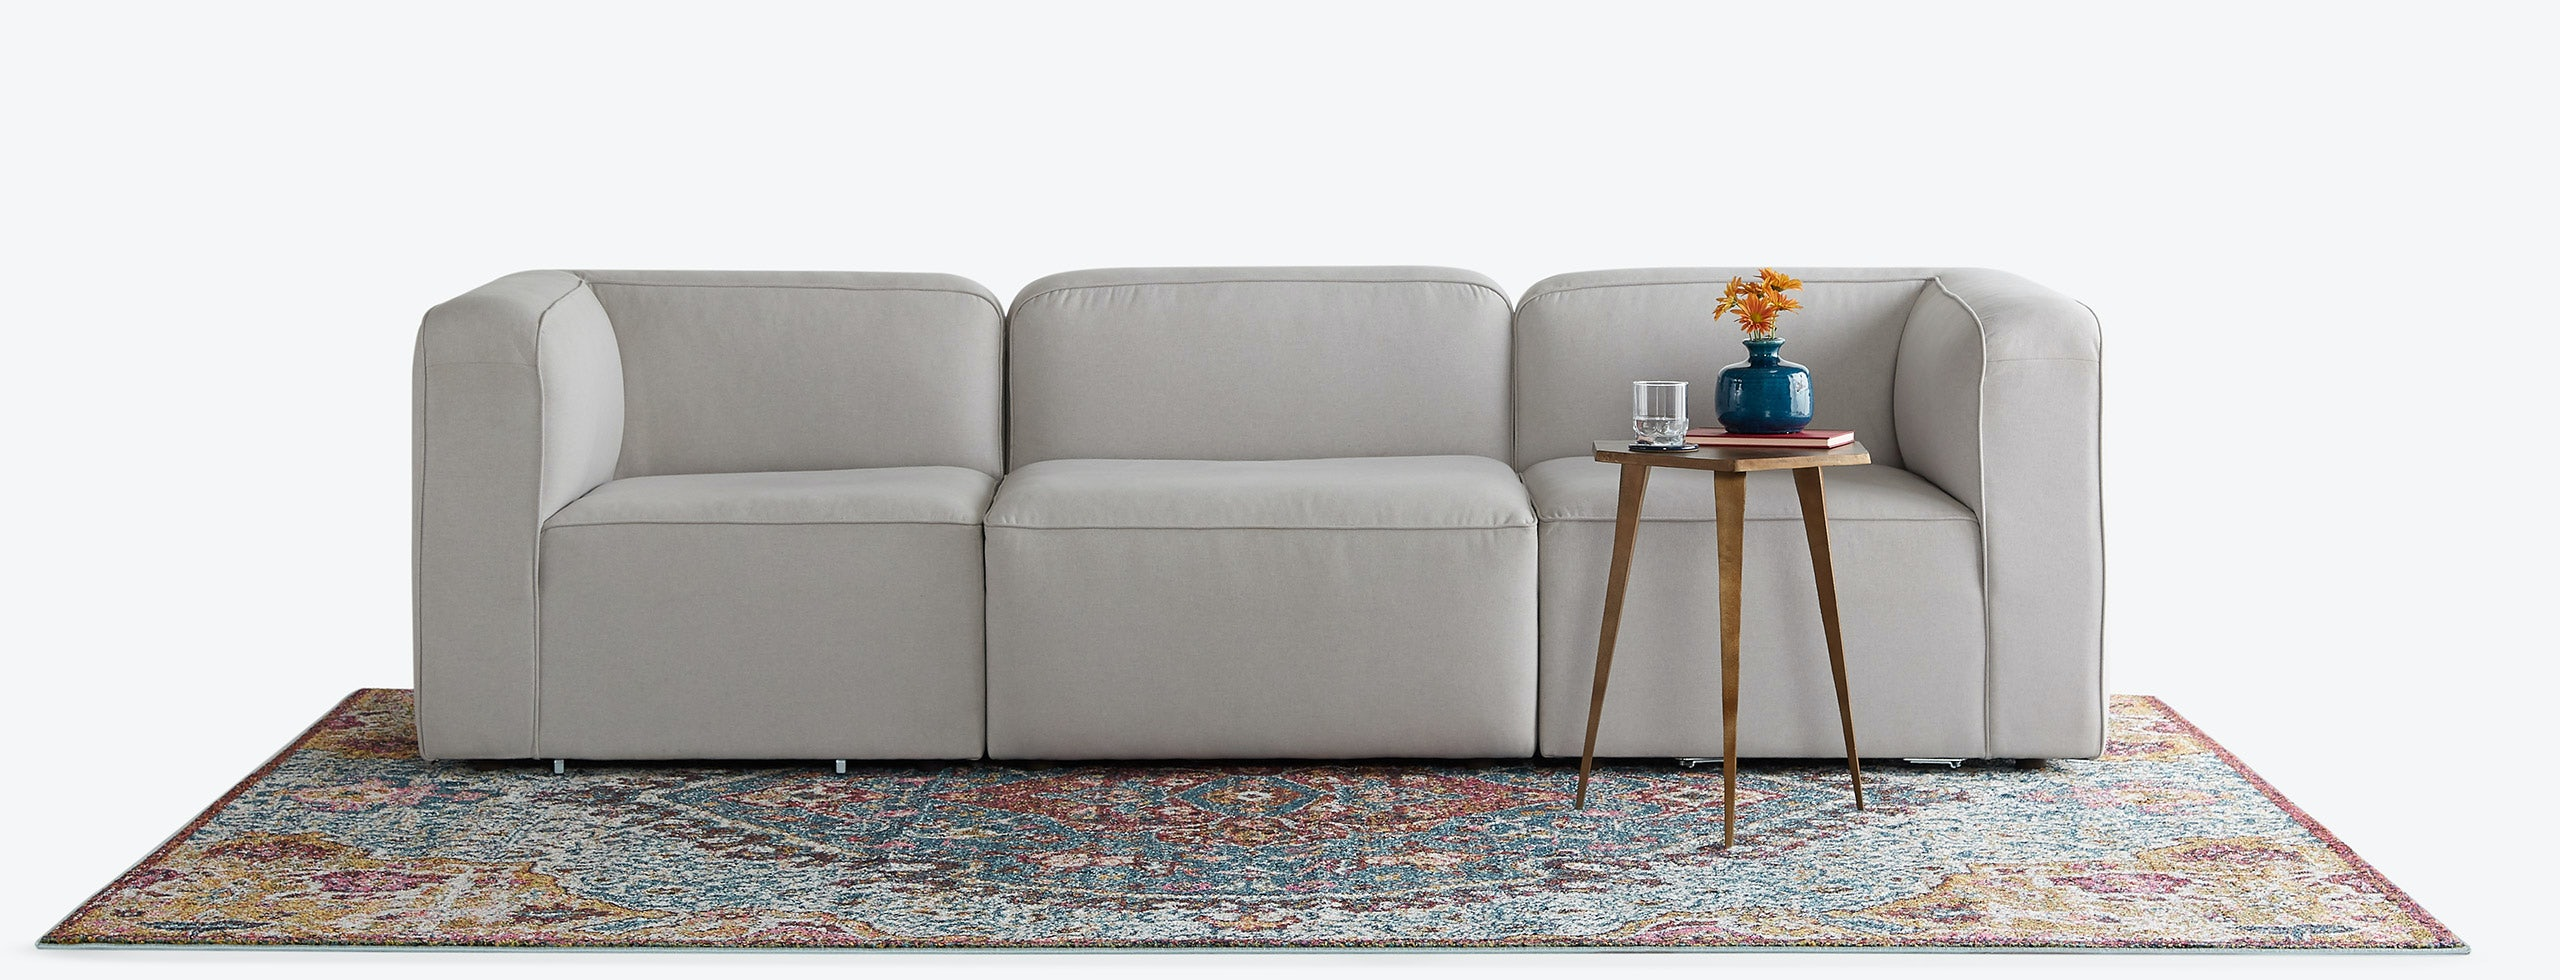 hero logan modular sofa backlog